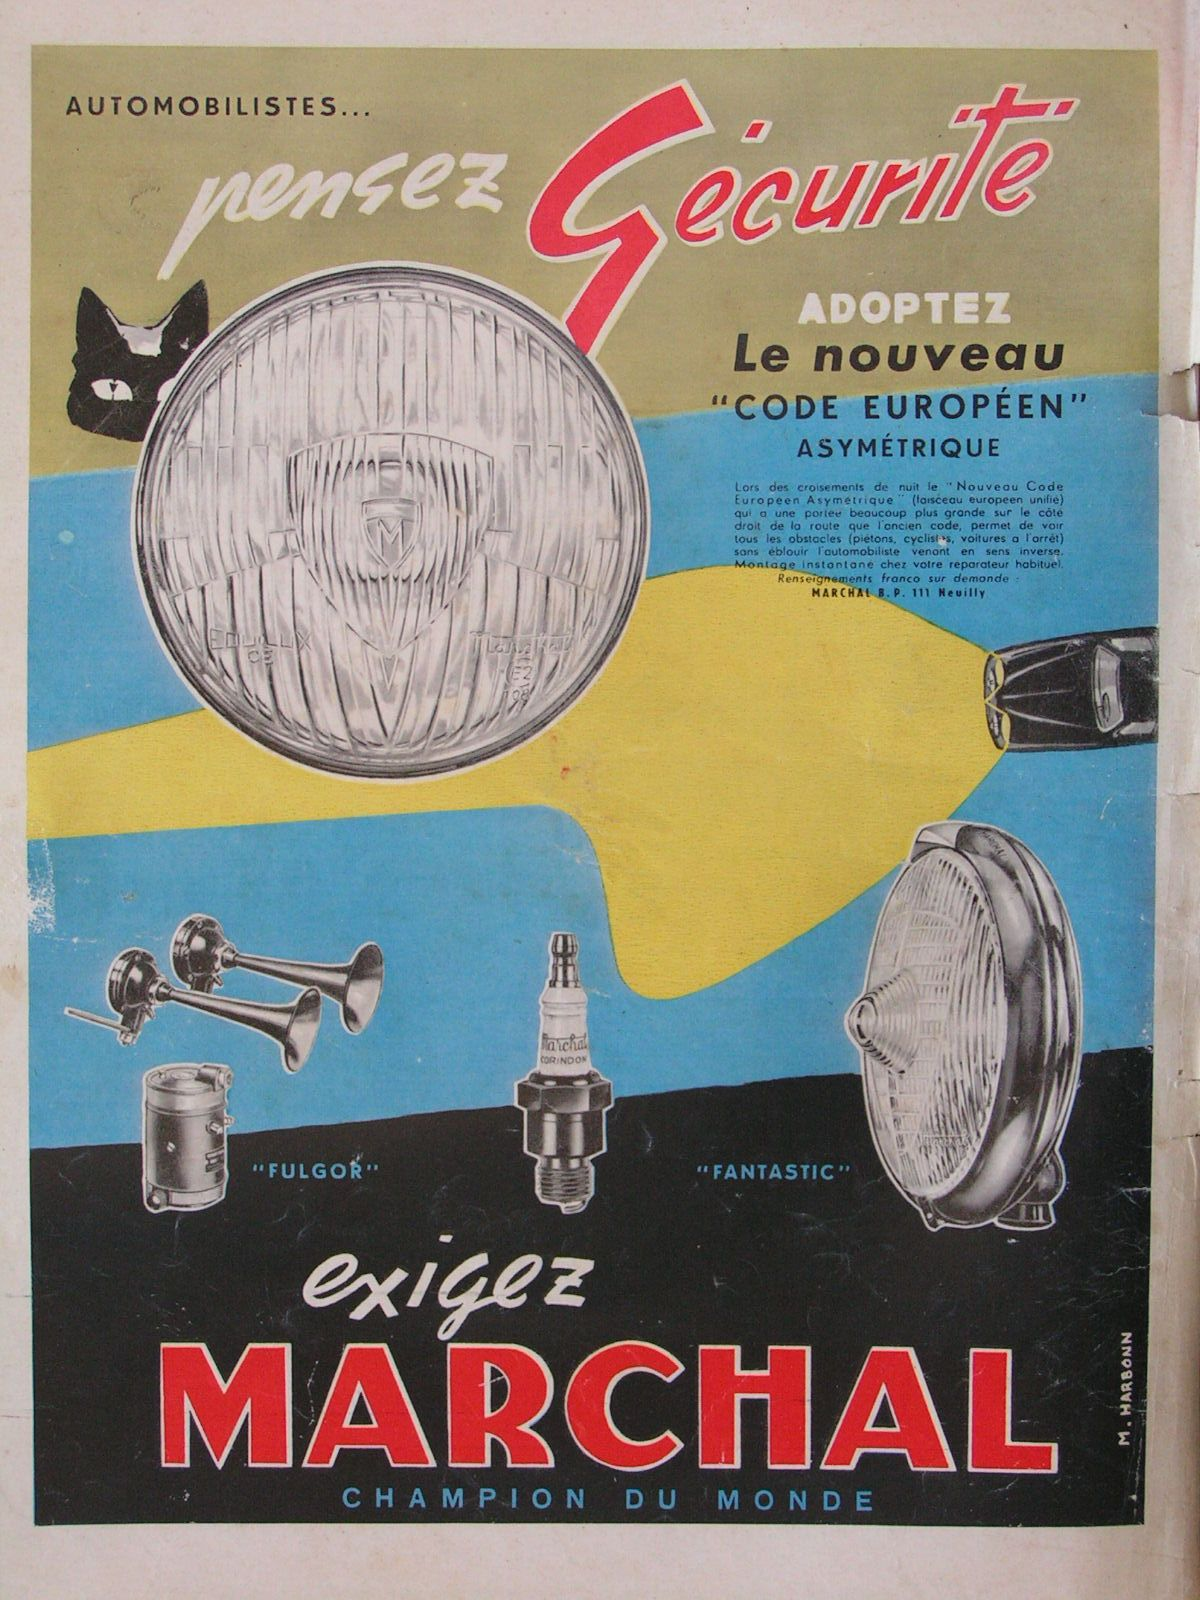 MARCHAL French advertisement